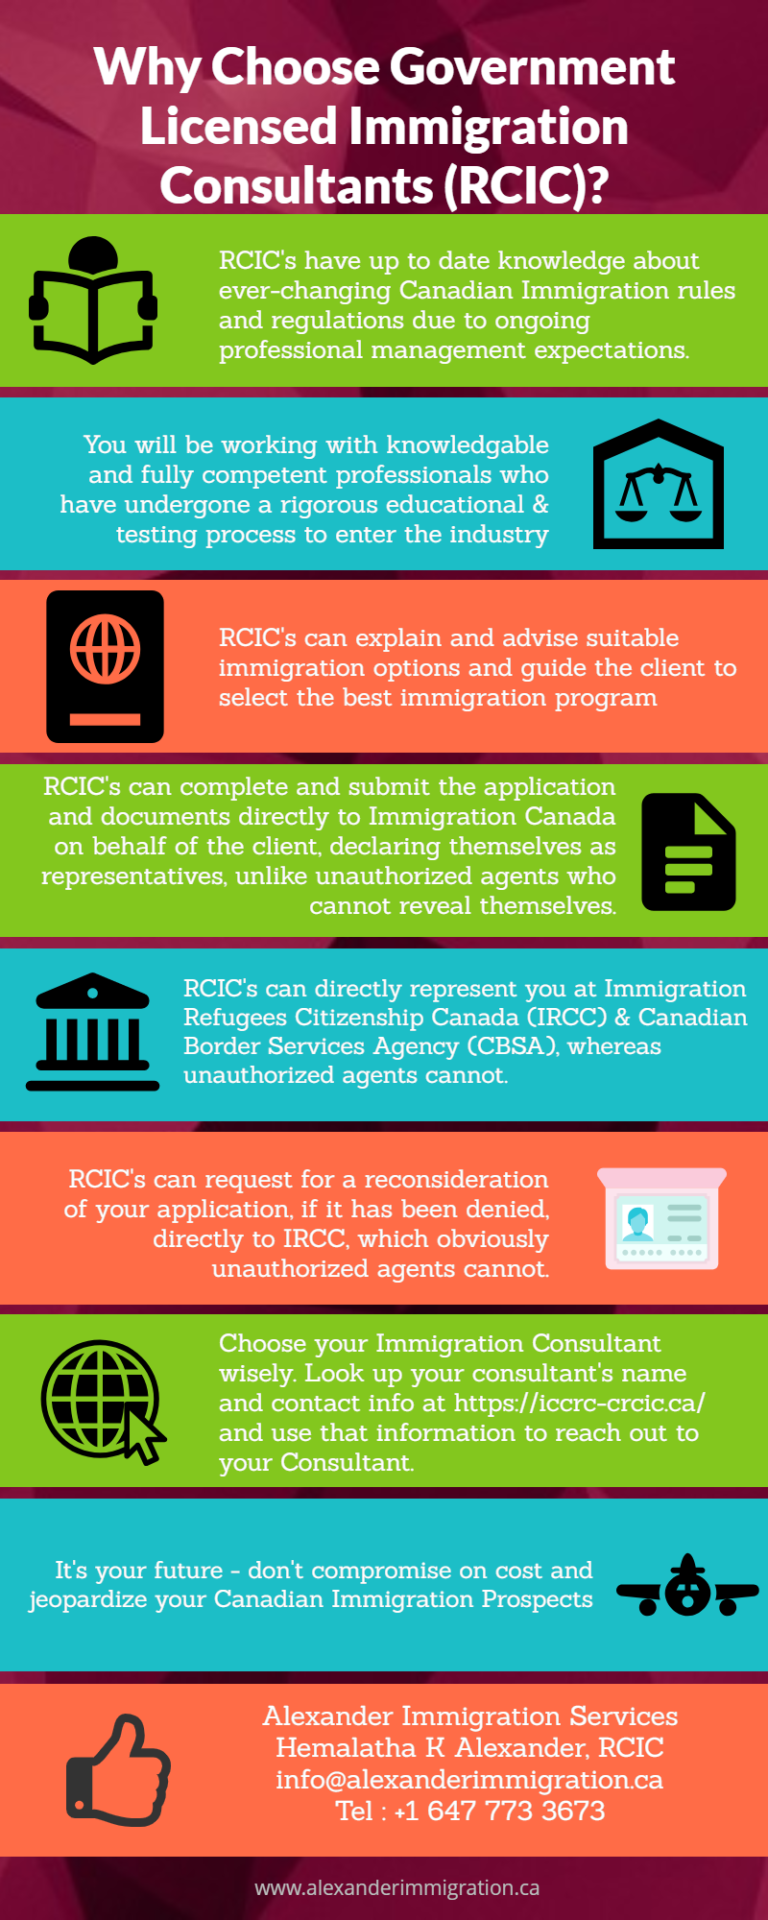 Why Choose Government LicWhy Choose Government Licensed Immigration Consultants (RCIC)?ensed Immigration Consultants (RCIC)?